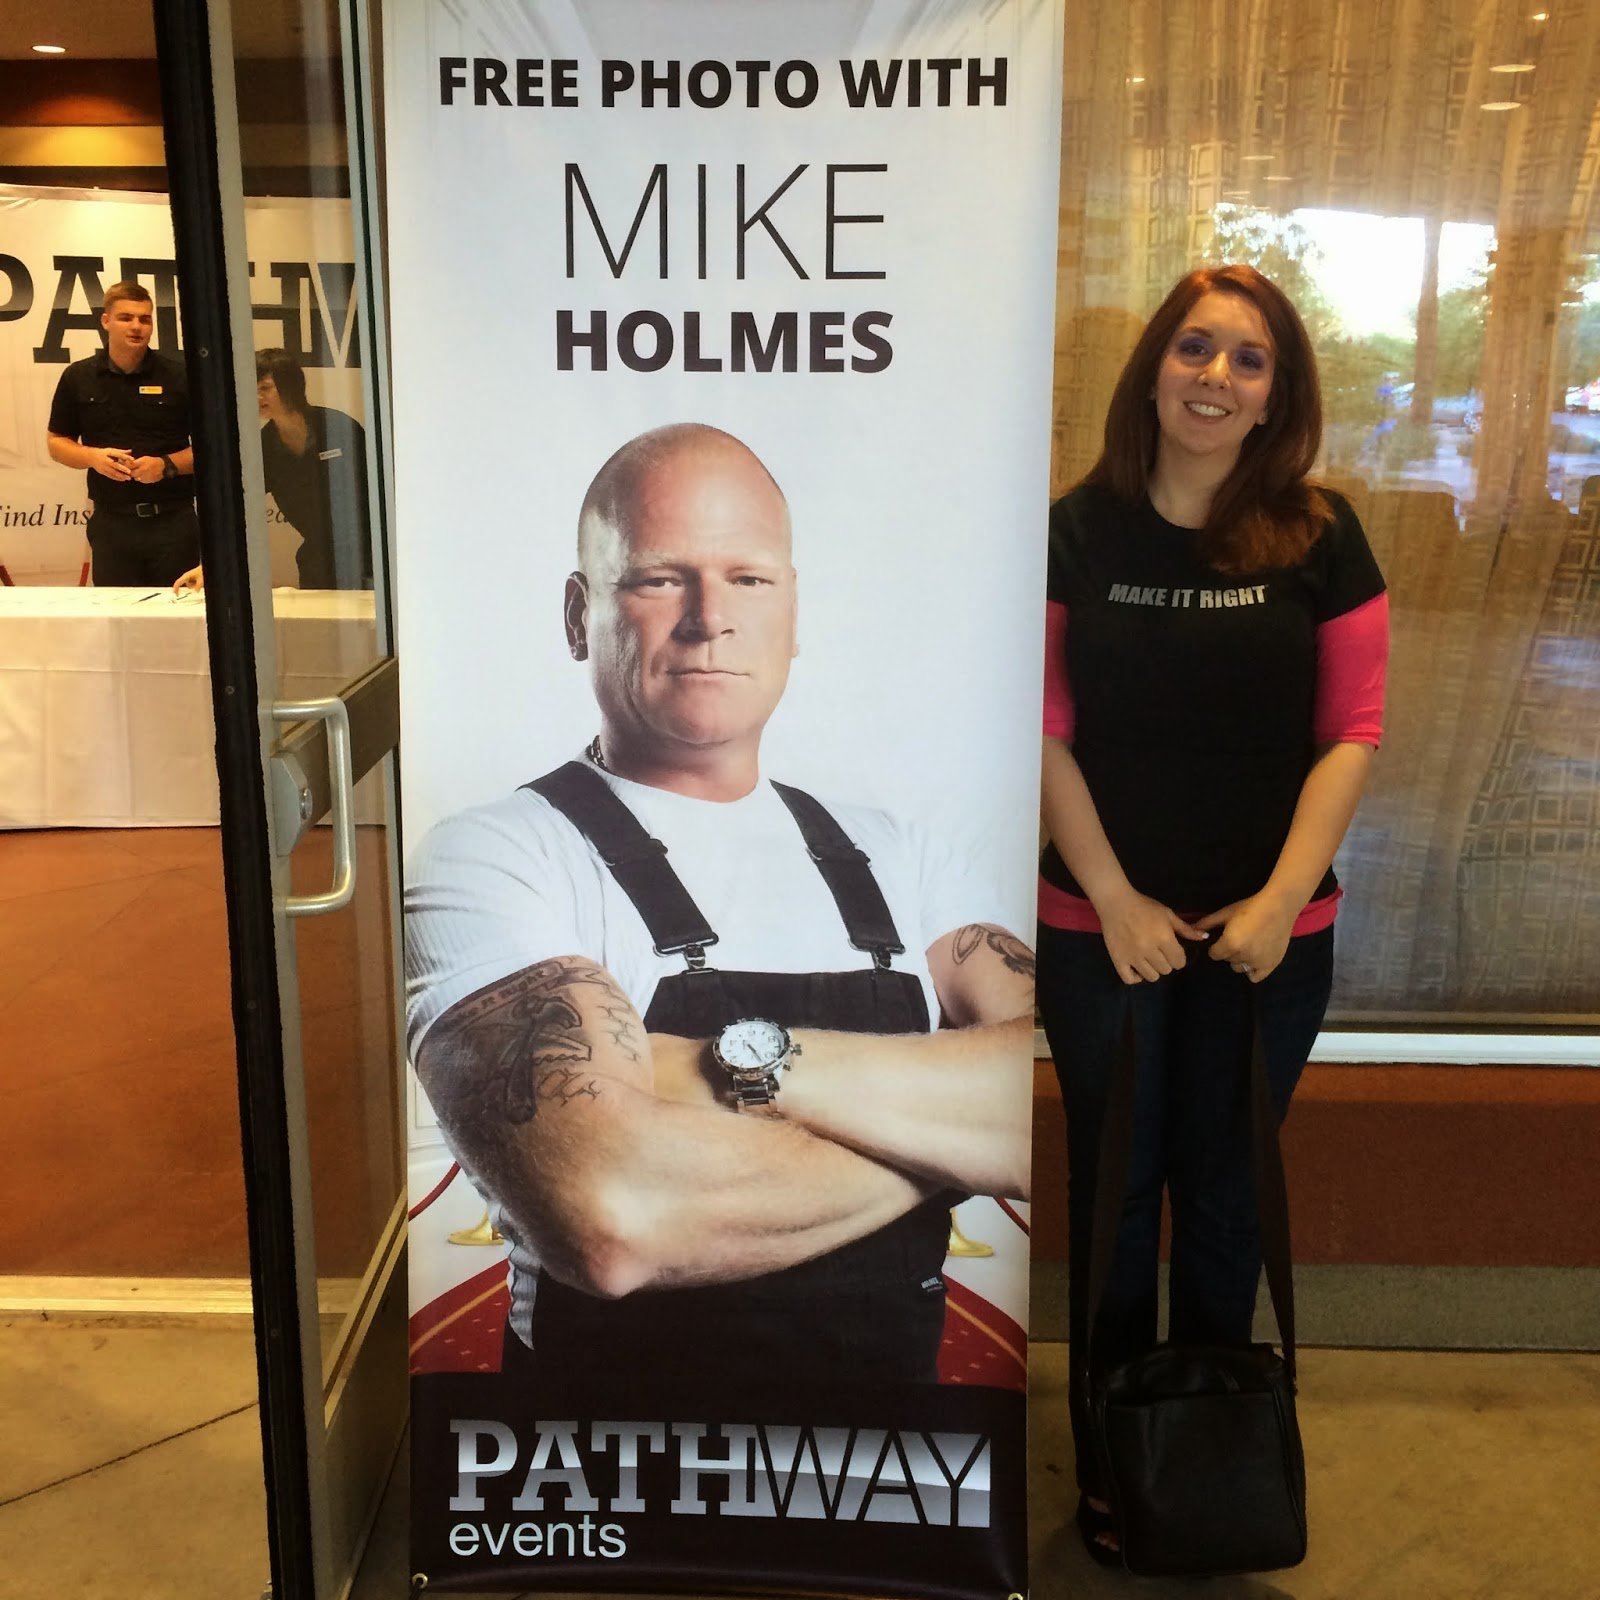 lsm_04-@@@ Mike Holmes: Pathway Events 2014 in Tempe, Arizona